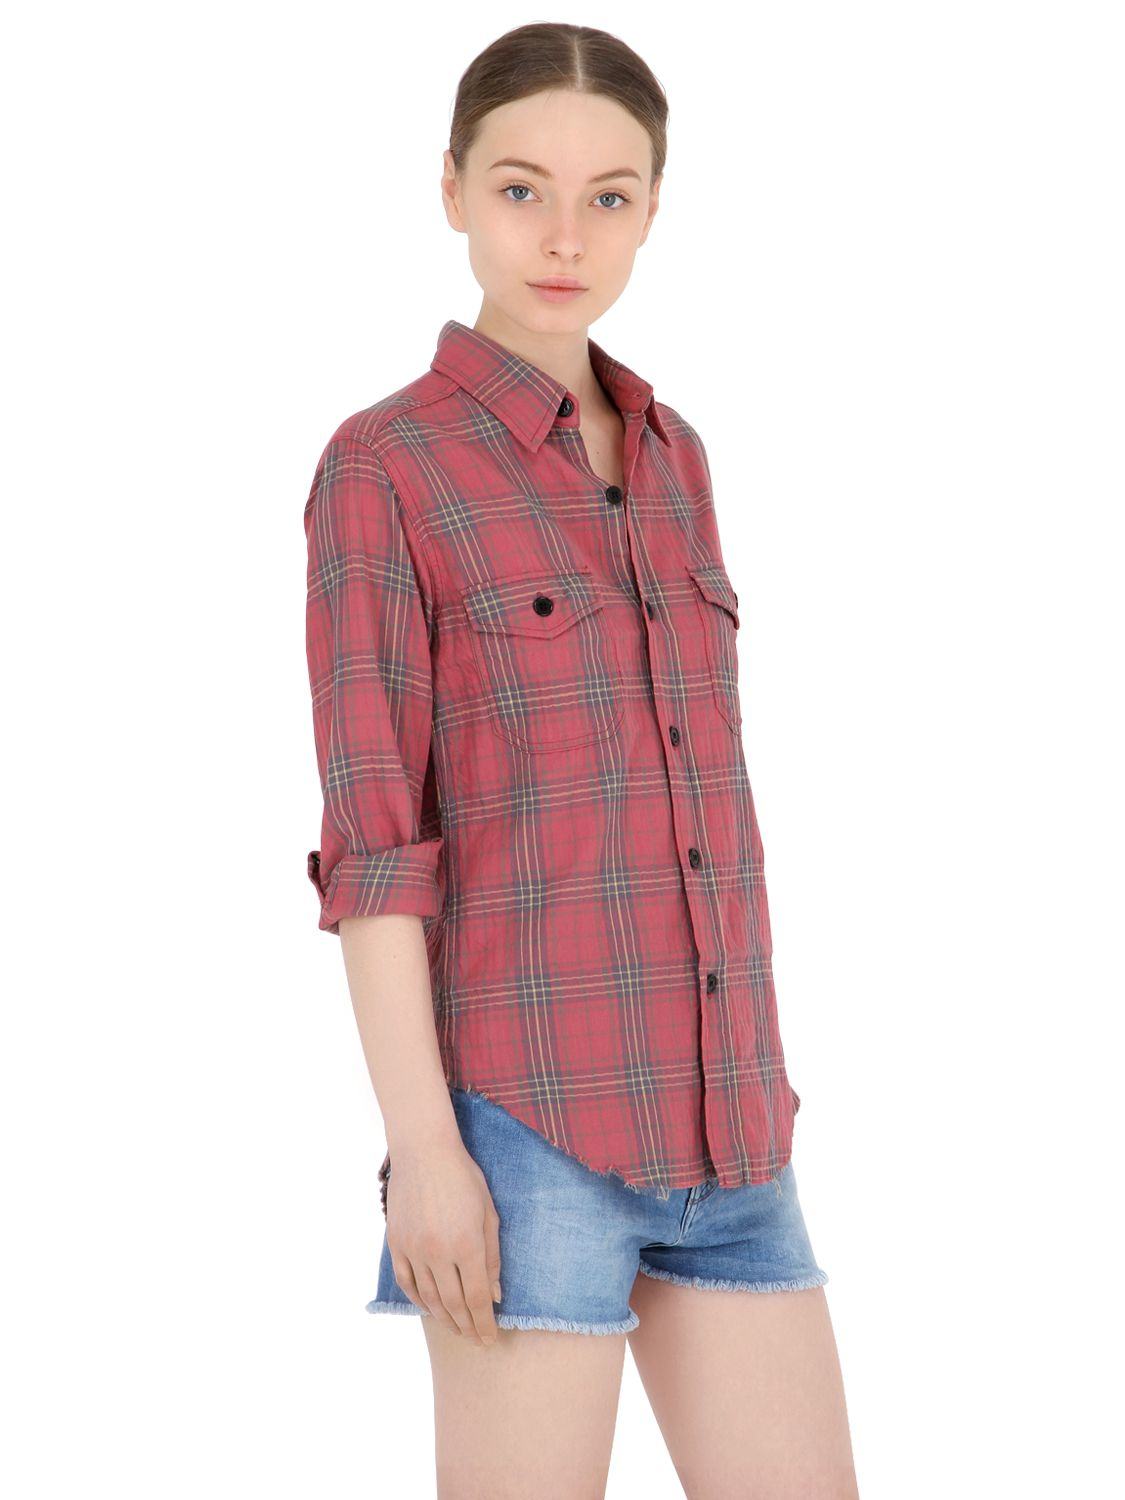 Saint Laurent Plaid Cotton Shirt With Raw Cut Hem In Red